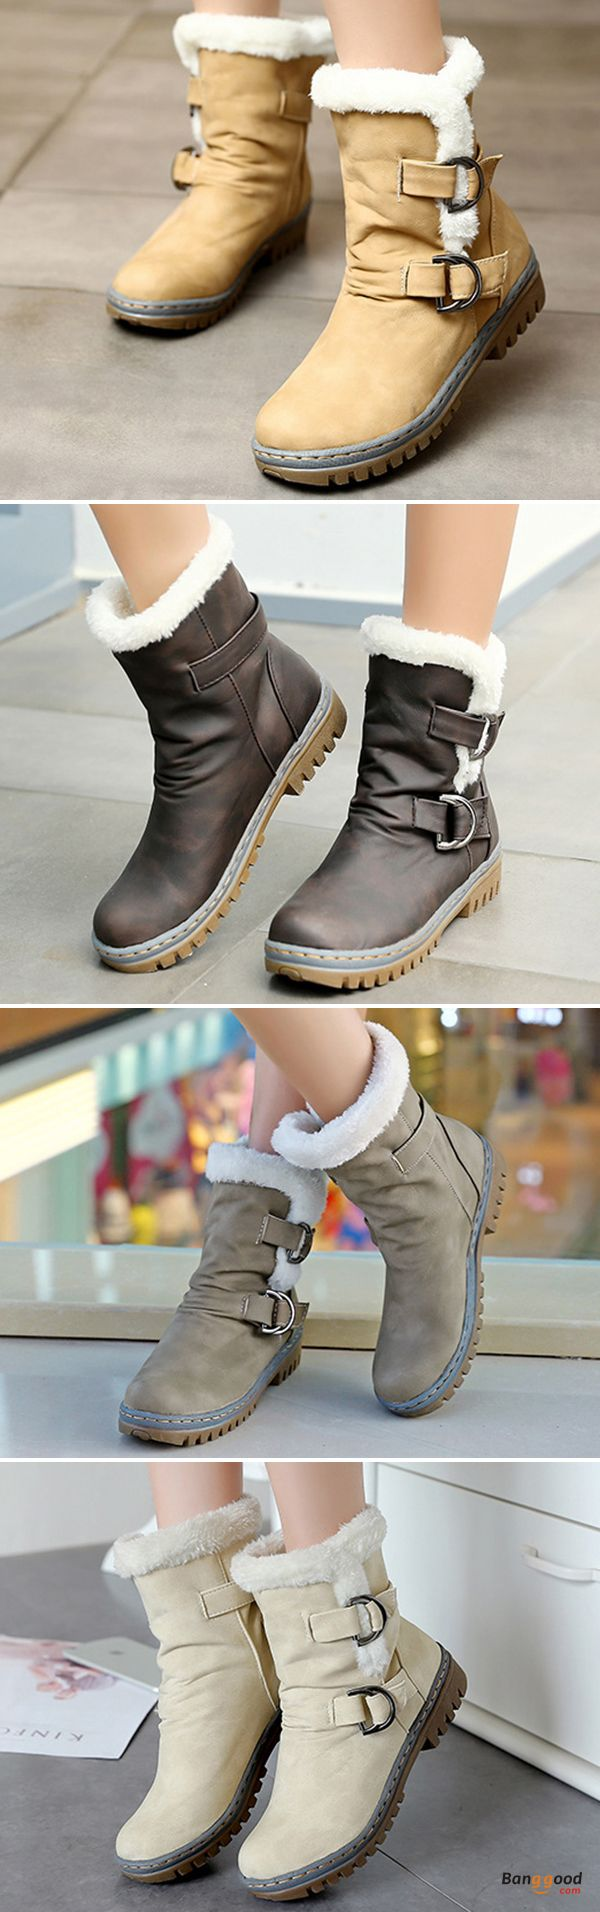 US$40.99 + Free shipping. Size: 5-12. Color: Beige, Yellow Brown, Army Green. Fall in love with casual and elegant style! US Size 5-12 Women Fur Lining Keep Warm Buckle Cotton Snow Boots.